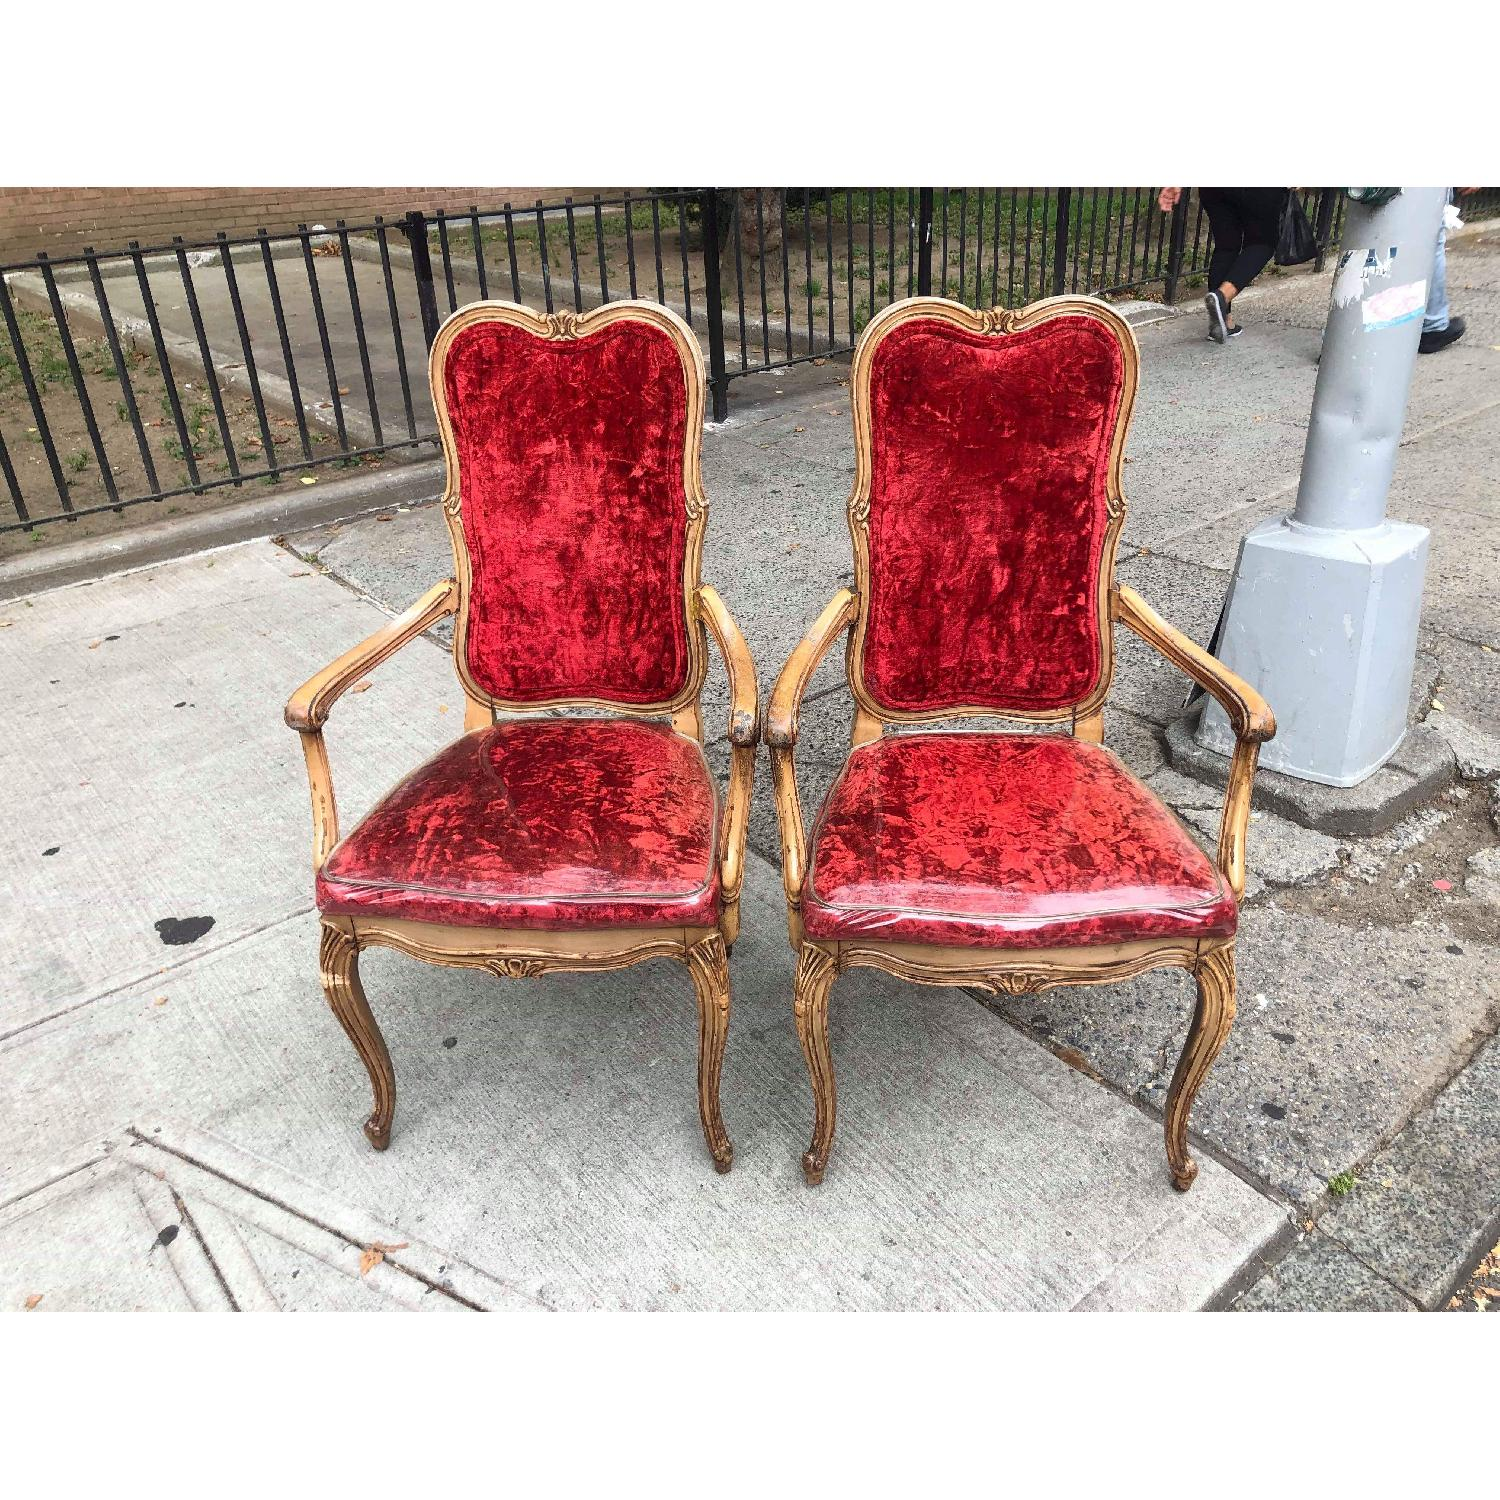 Vintage French Style Red Armchairs - image-12